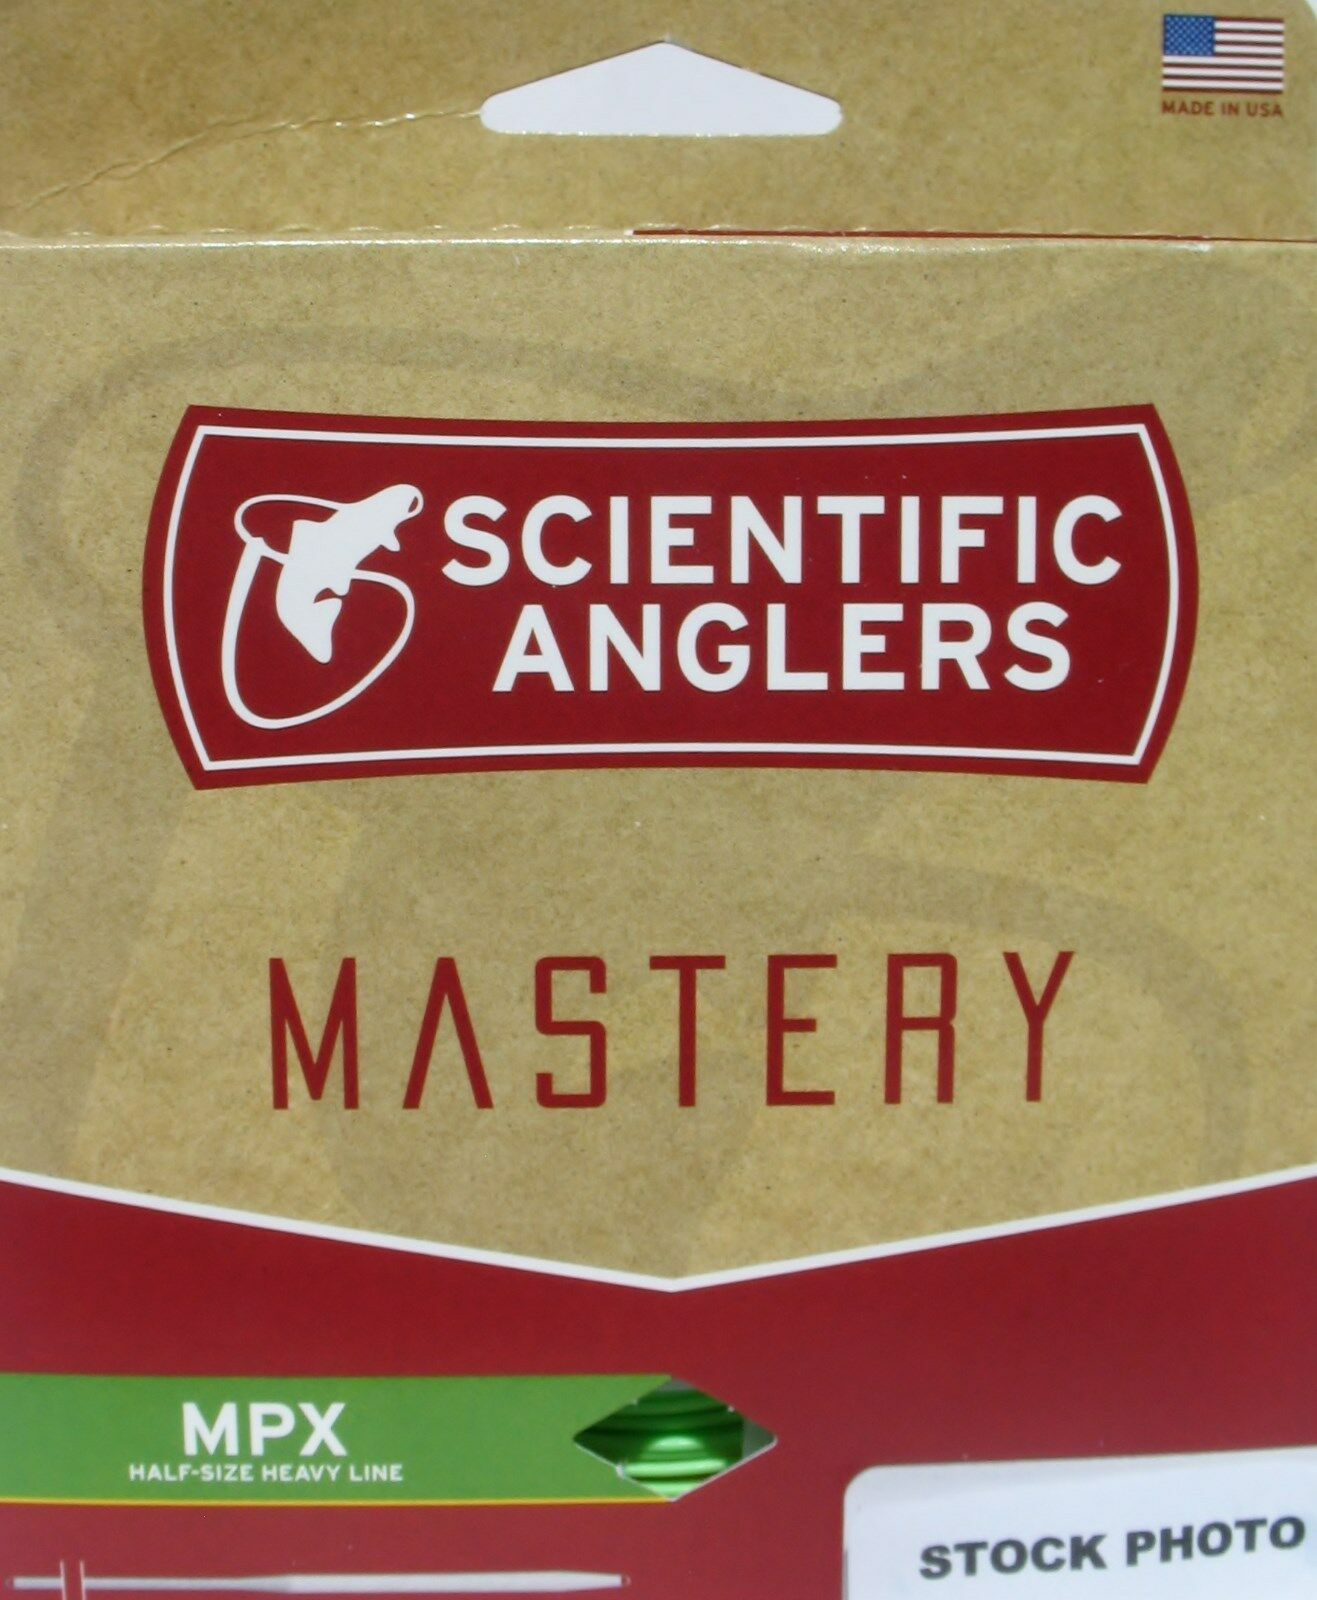 SCIENTIFIC ANGLERS MASTERY MPX OPTIC  SELECT Größe  FREE  WARP SPEED  SHIPPING